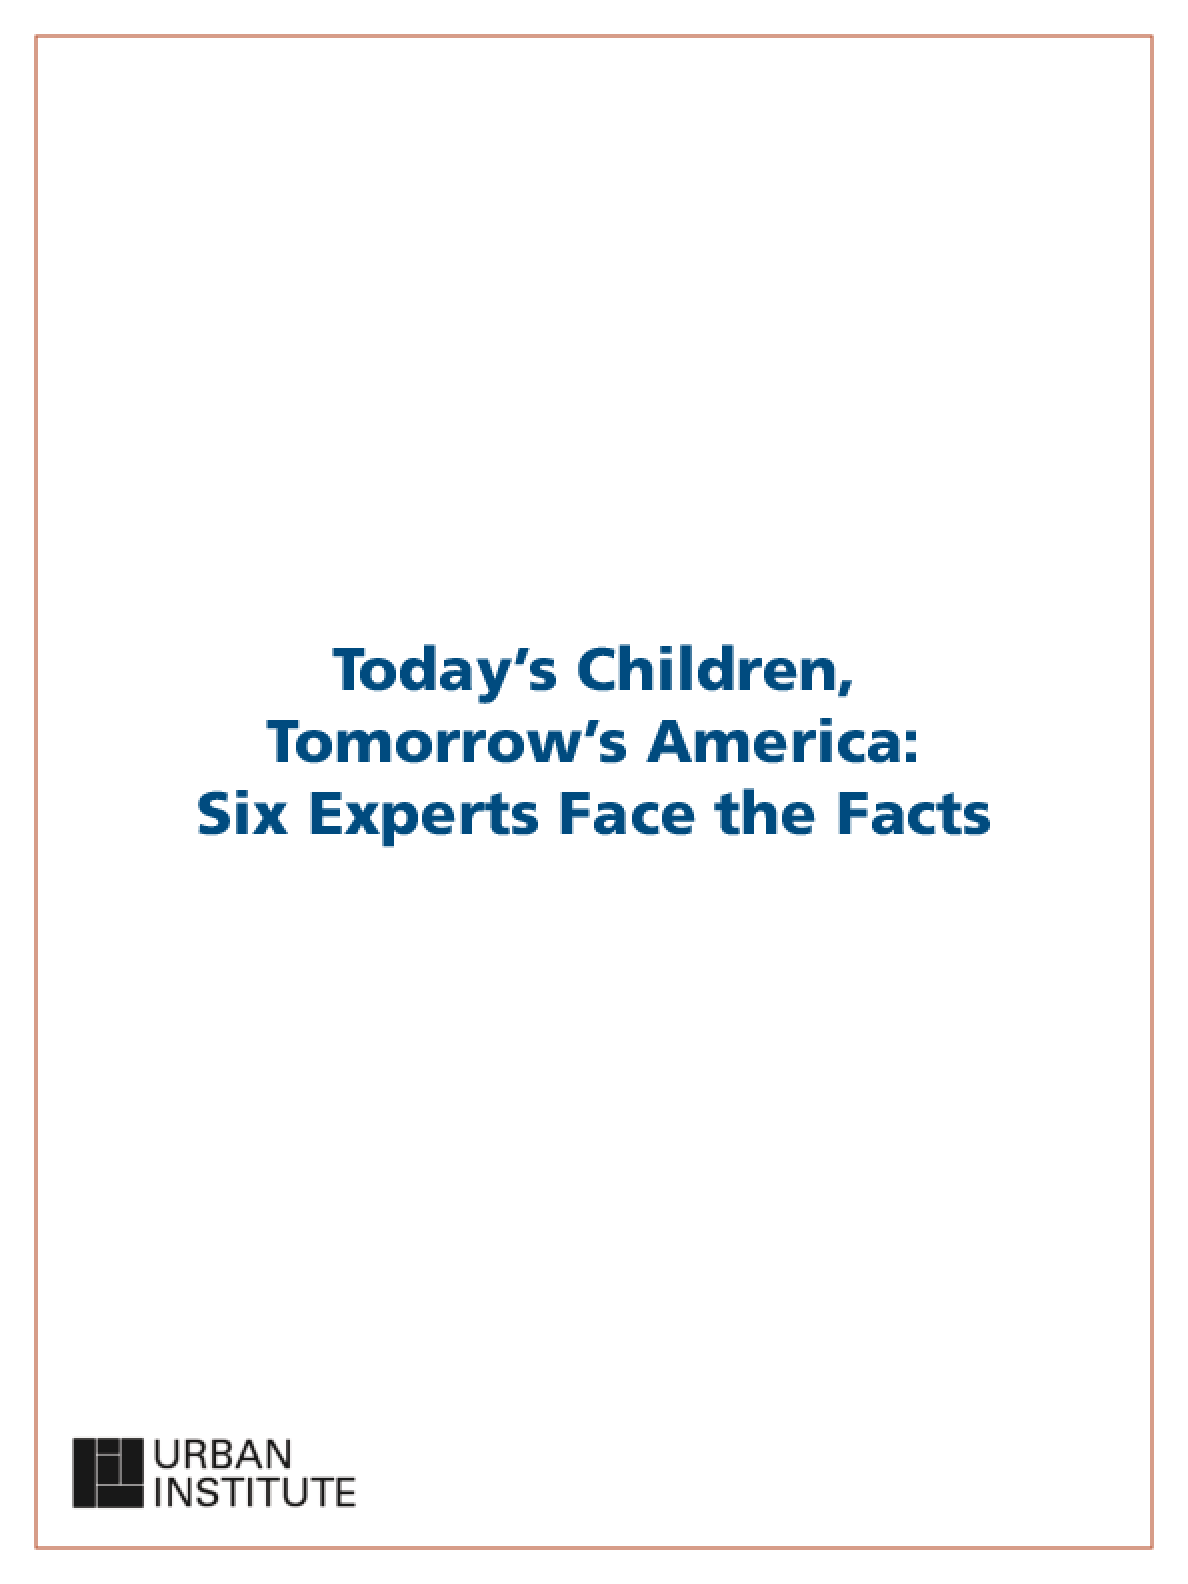 Today's Children, Tomorrow's America: Six Experts Face the Facts